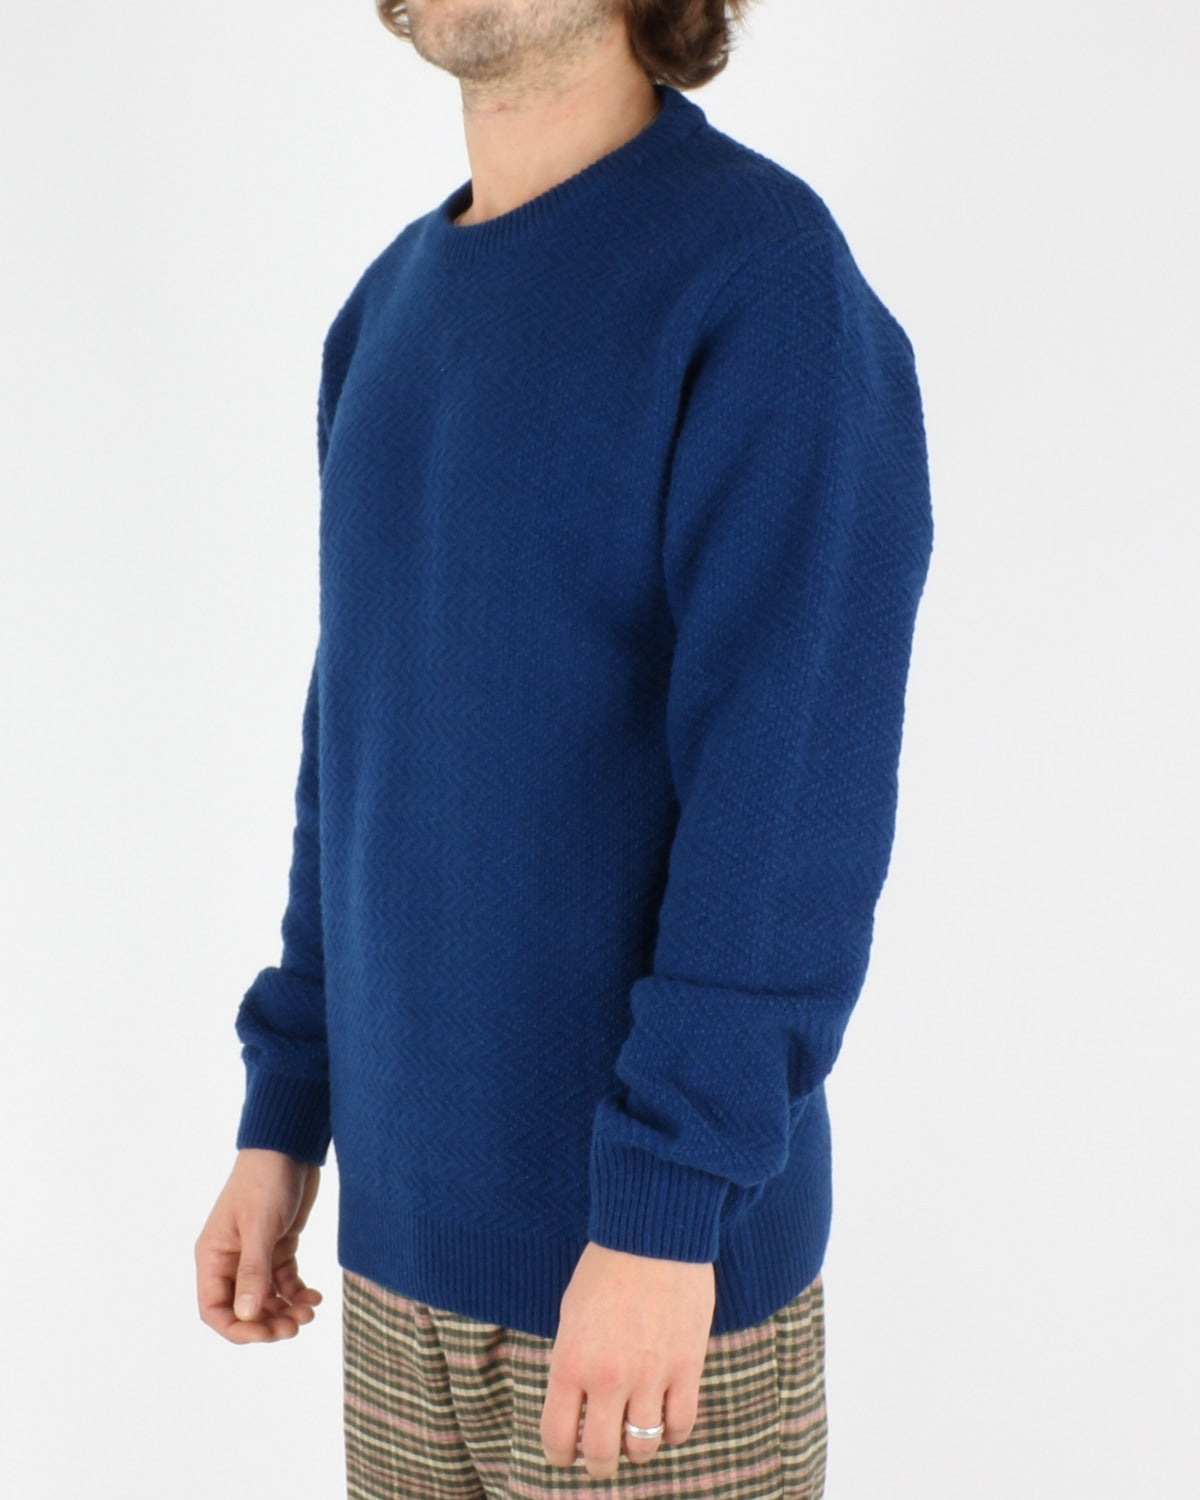 soulland_cassidy herringbone sweater_blue_2_4